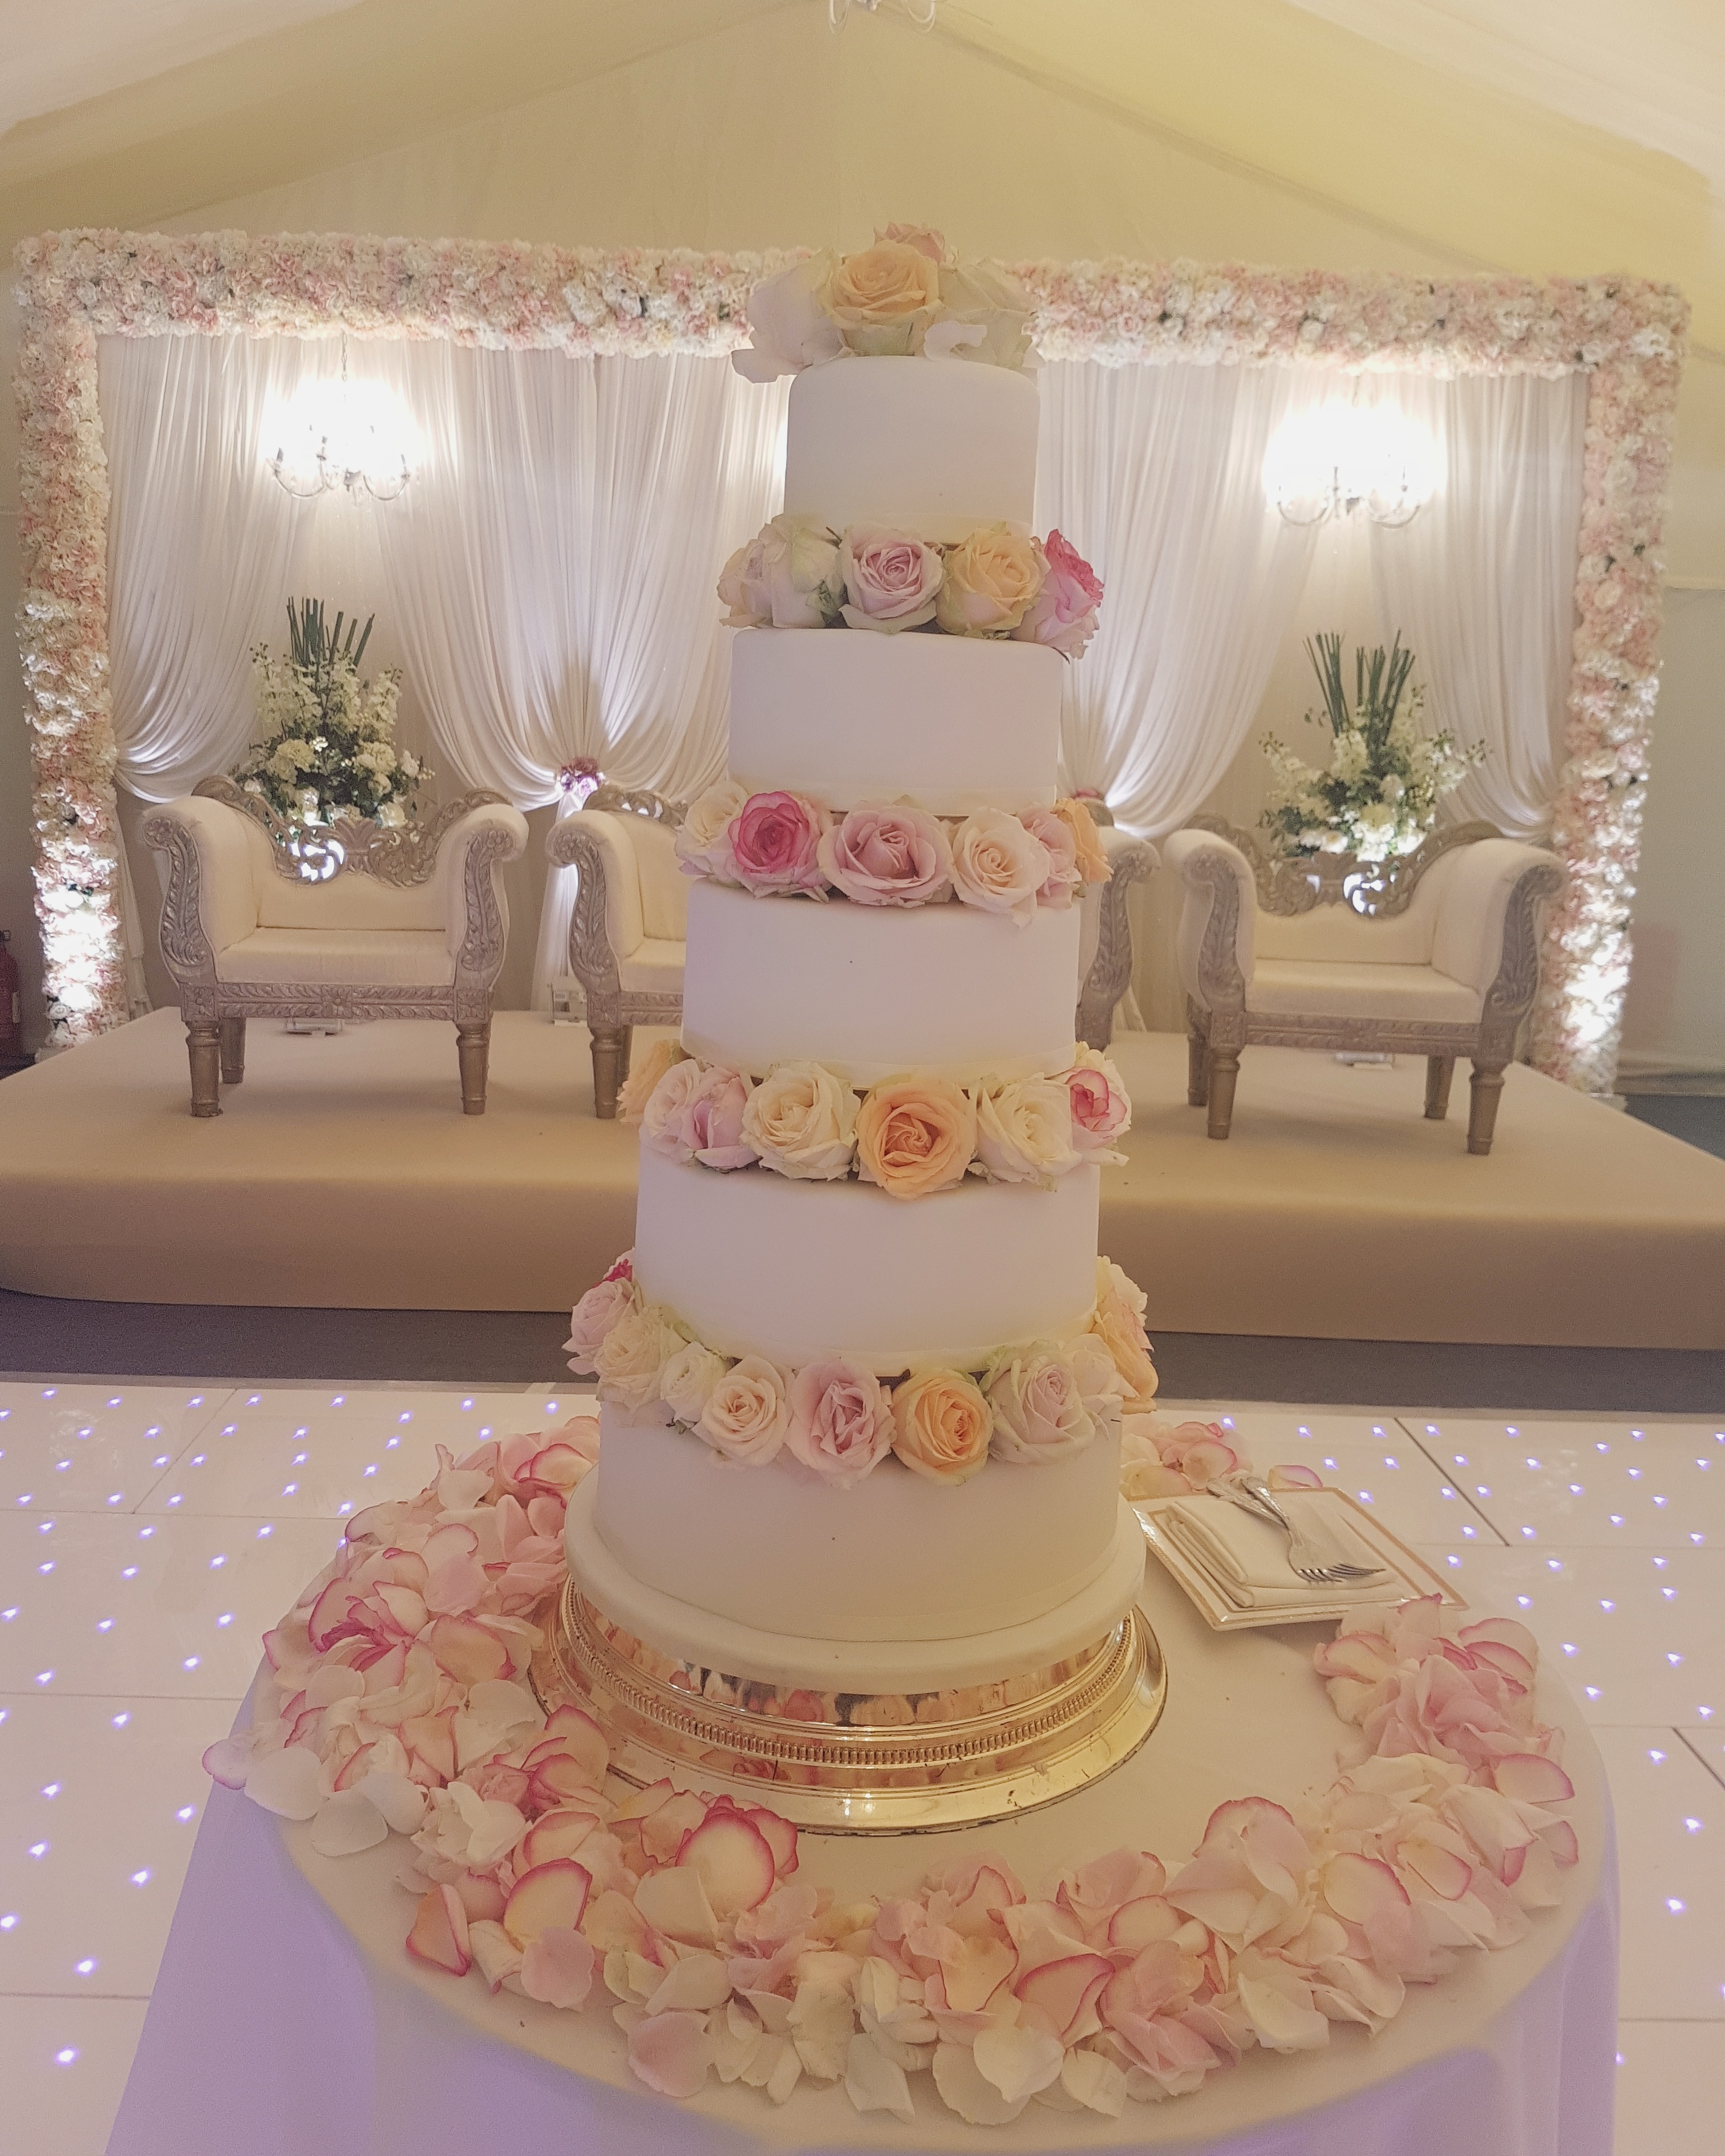 Fresh Flowers 5 Tiers 545 Bespoke Cakes And Treats